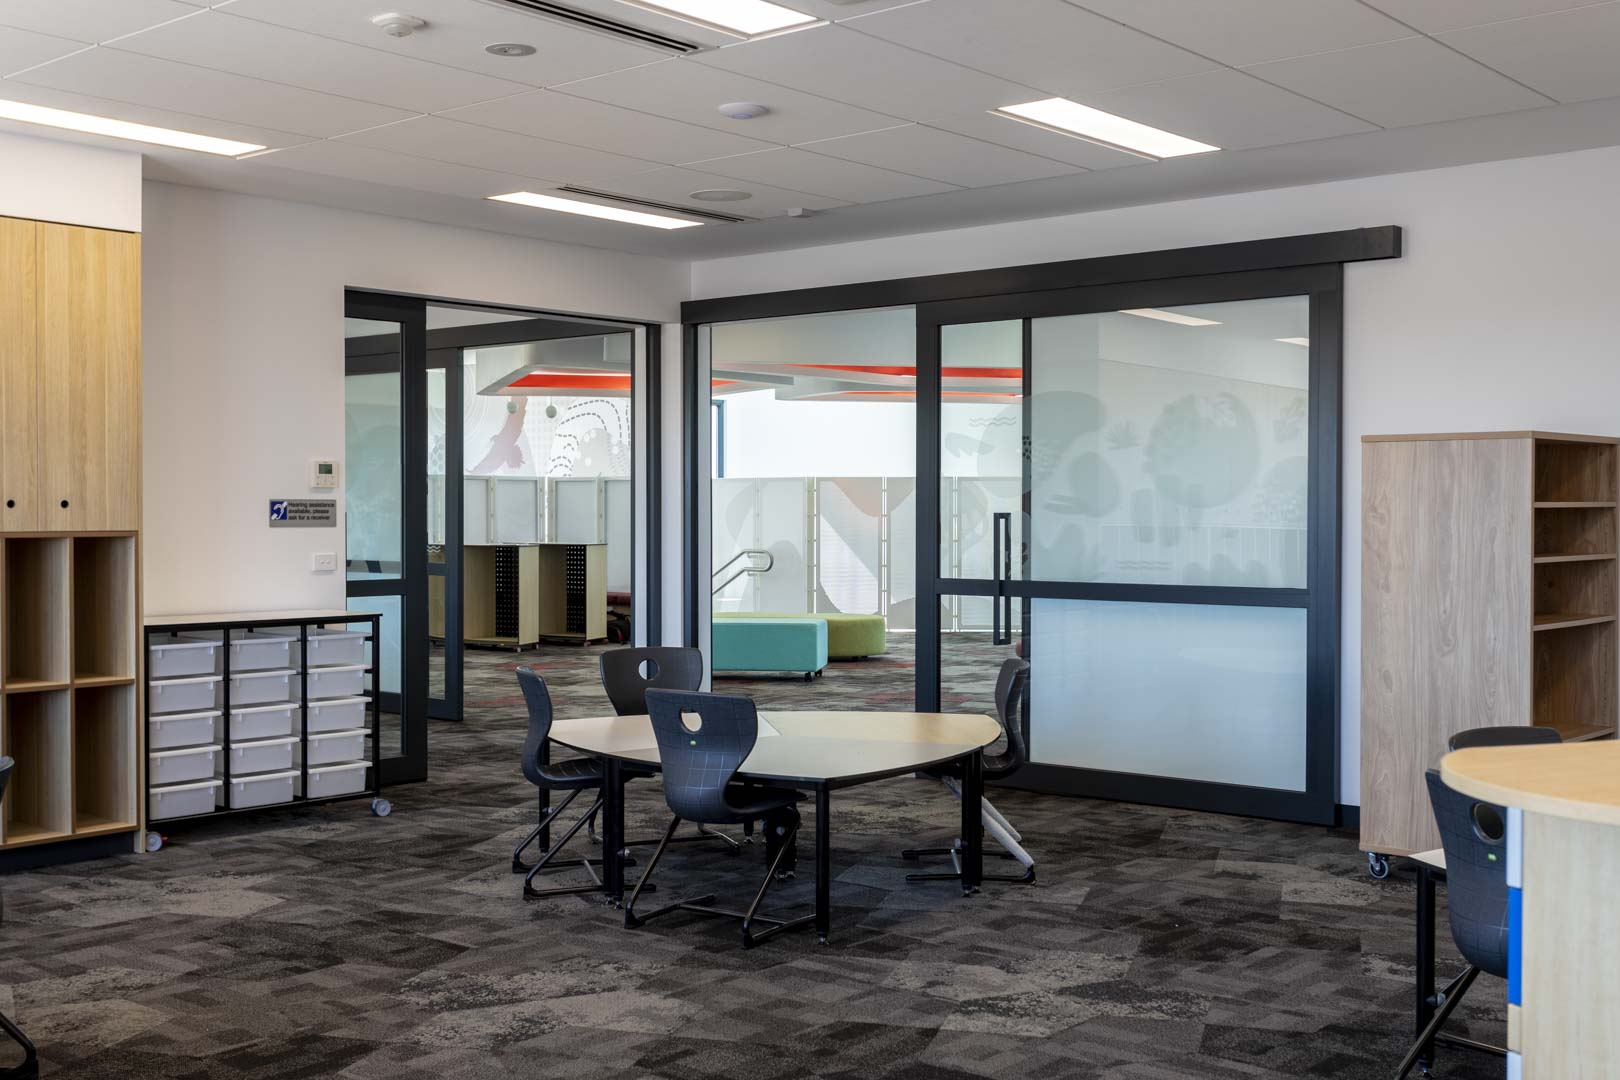 image of several acoustic sliding doors in a grammar school to create flexible learning spaces